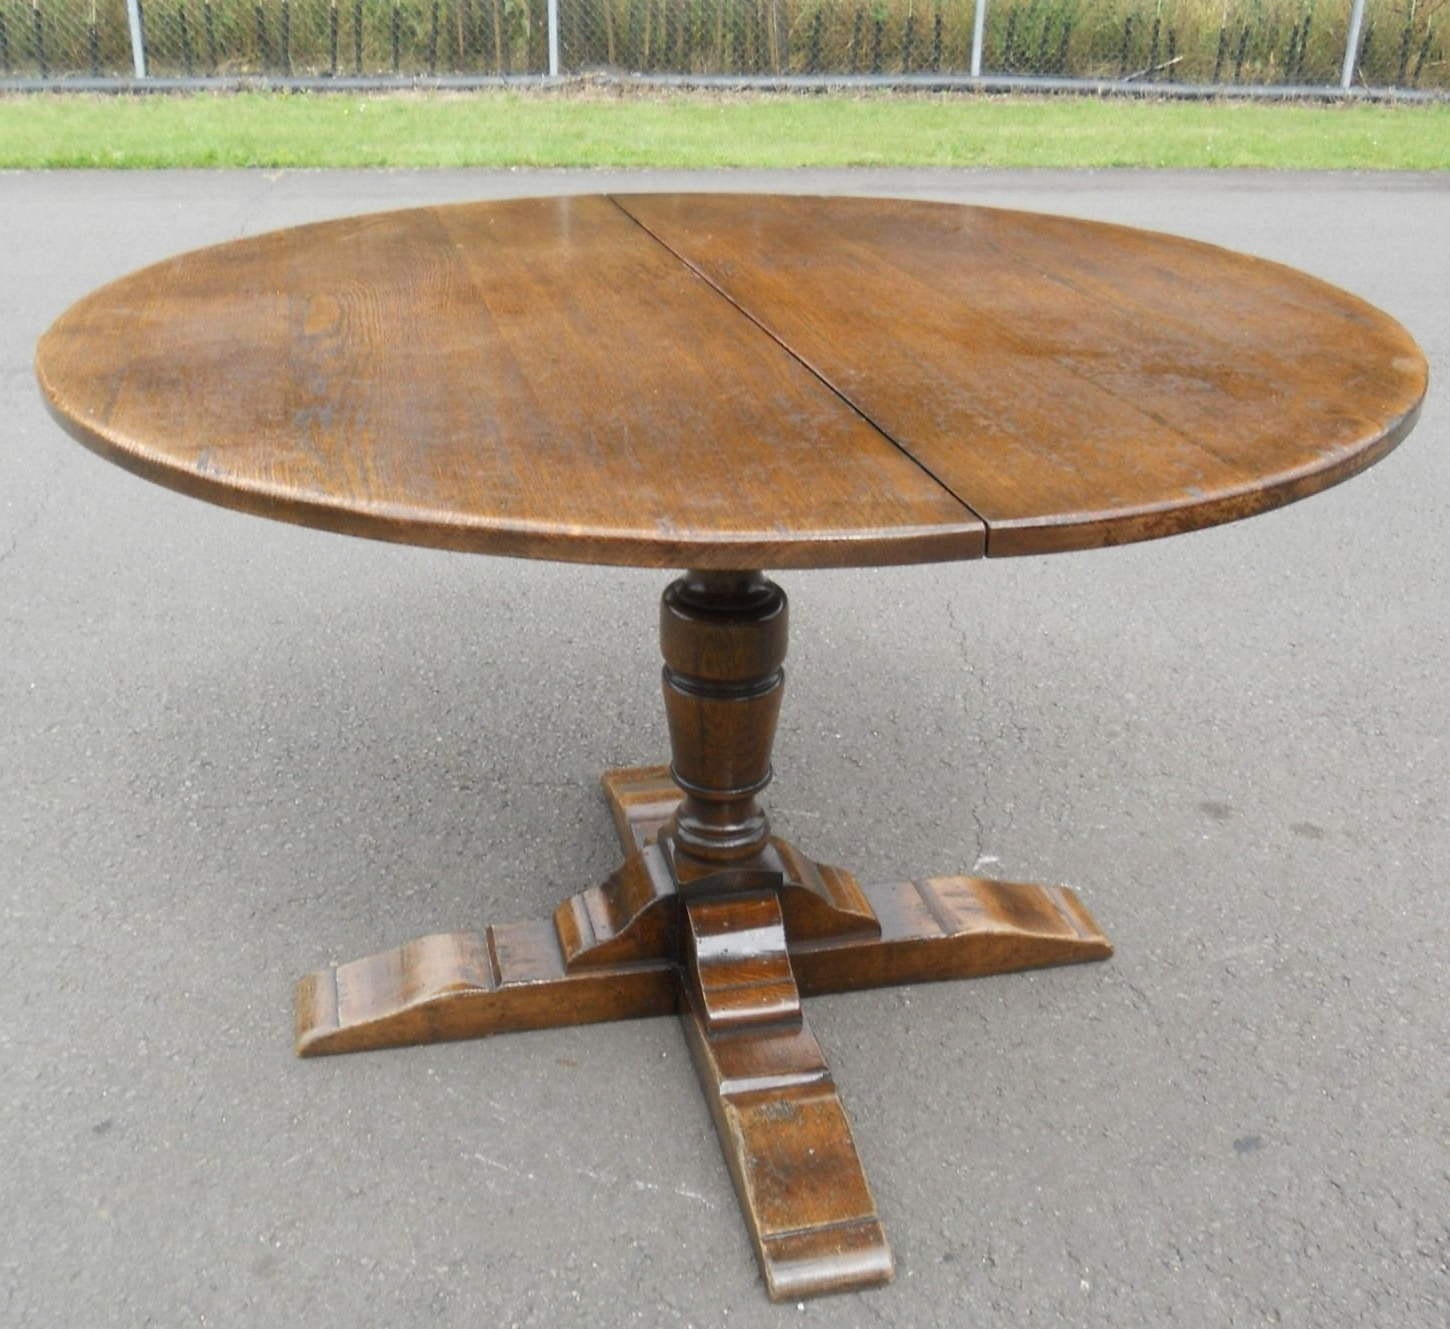 Newest Circular Oak Dining Tables For Sold – Round Oak Pedestal Extending Dining Table To Seat Eight (View 2 of 25)